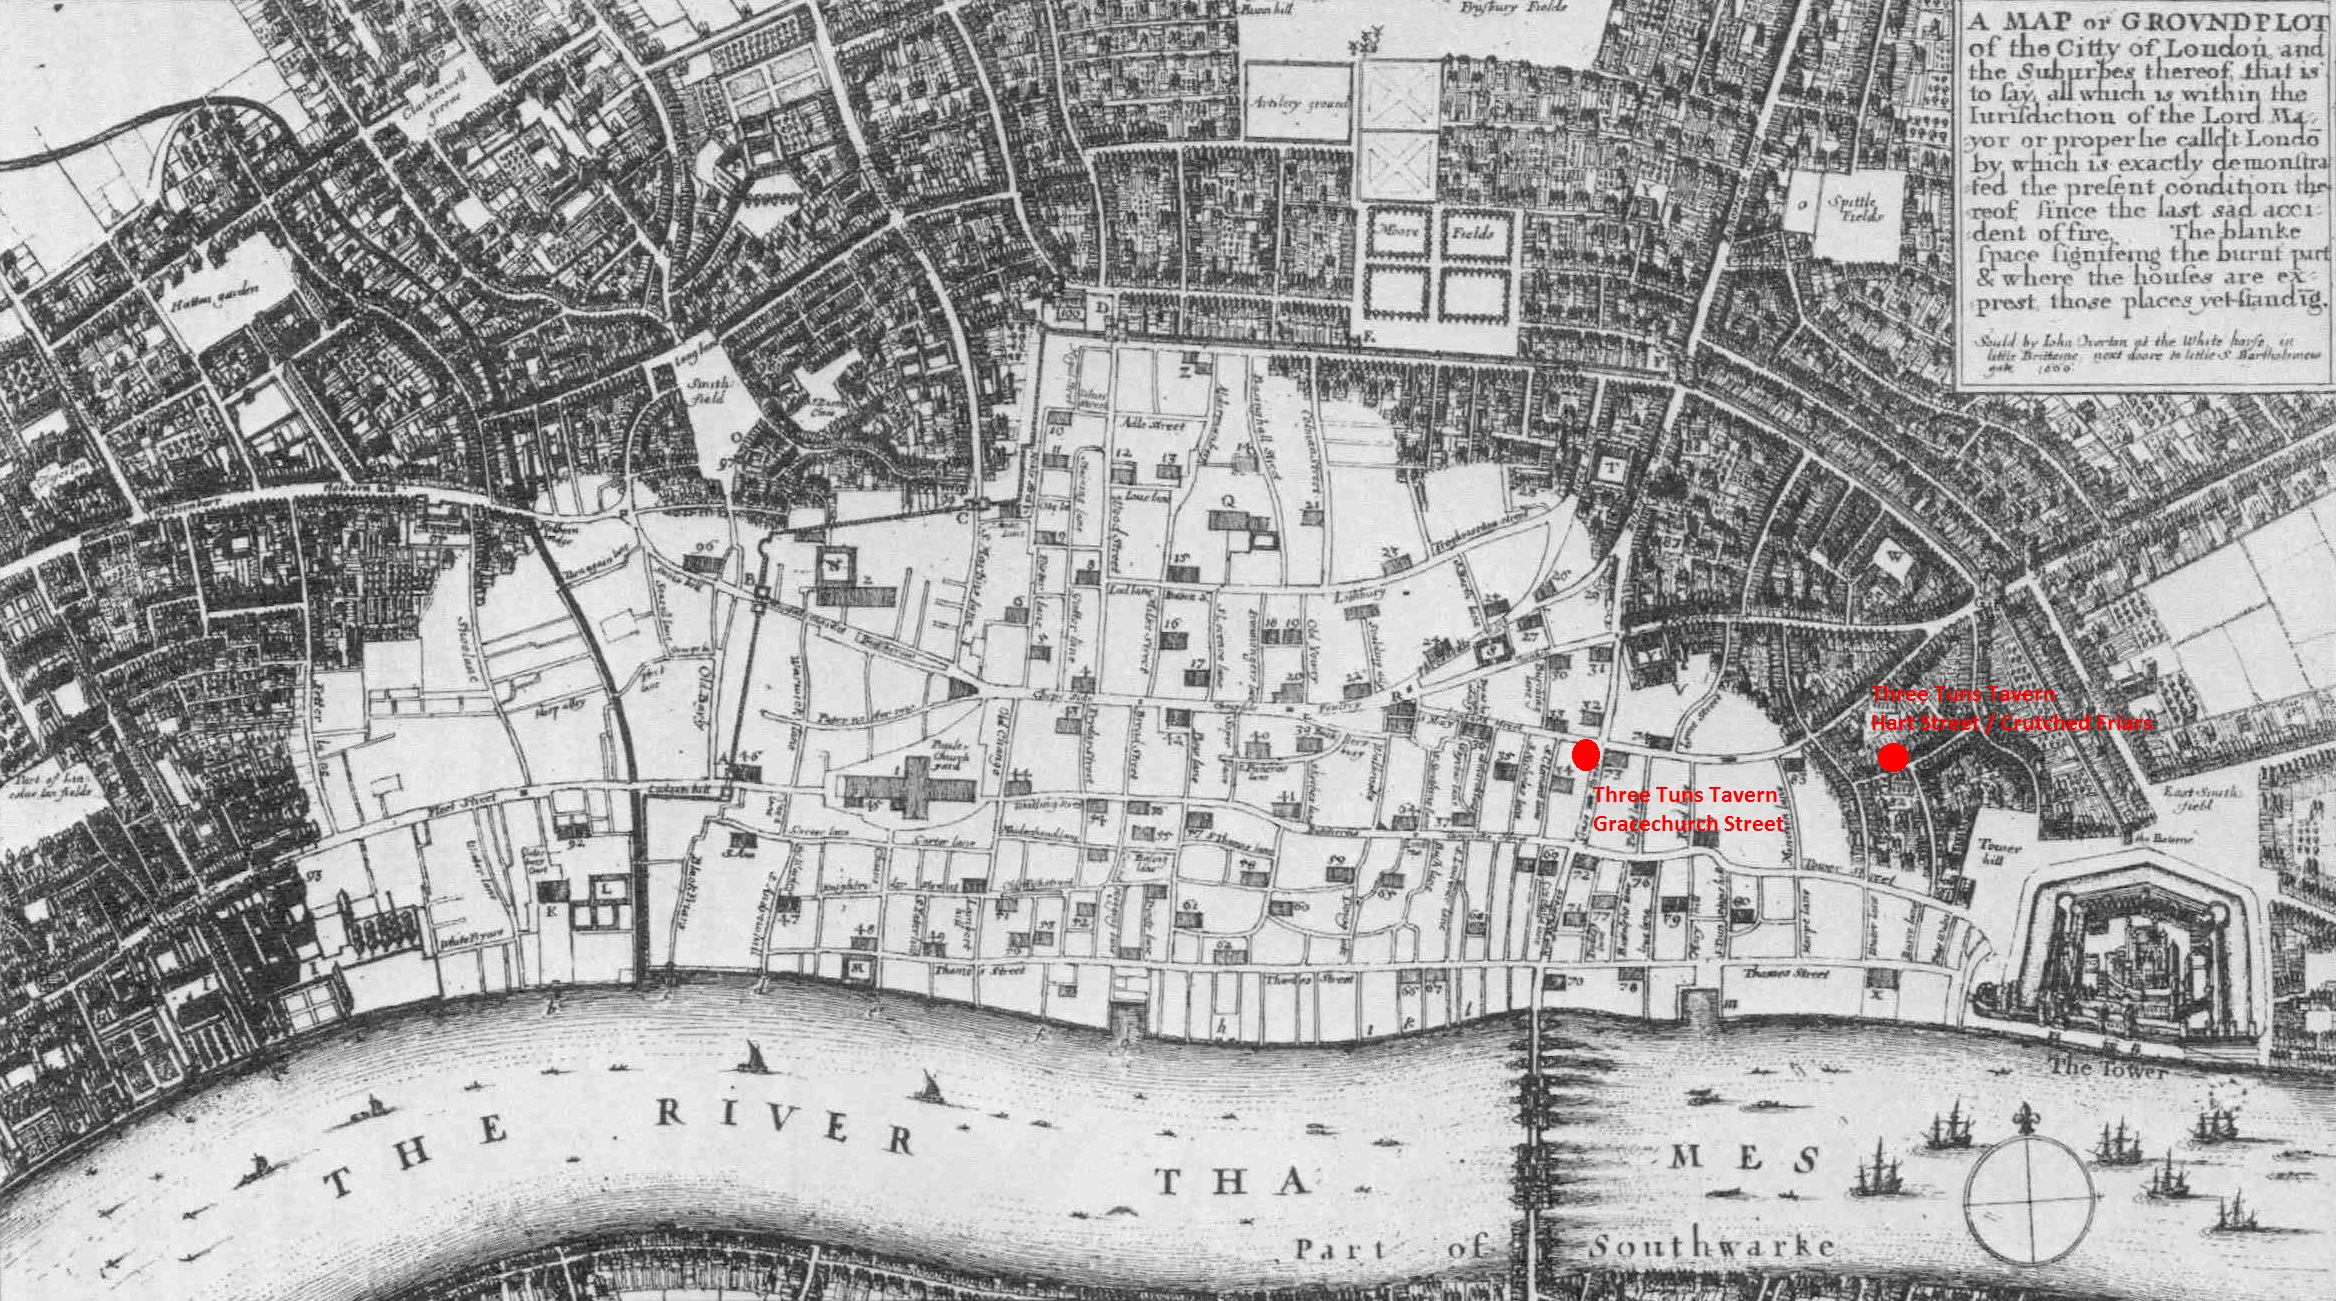 a map of london immediately after the great fire of september 1666 showing the extent of